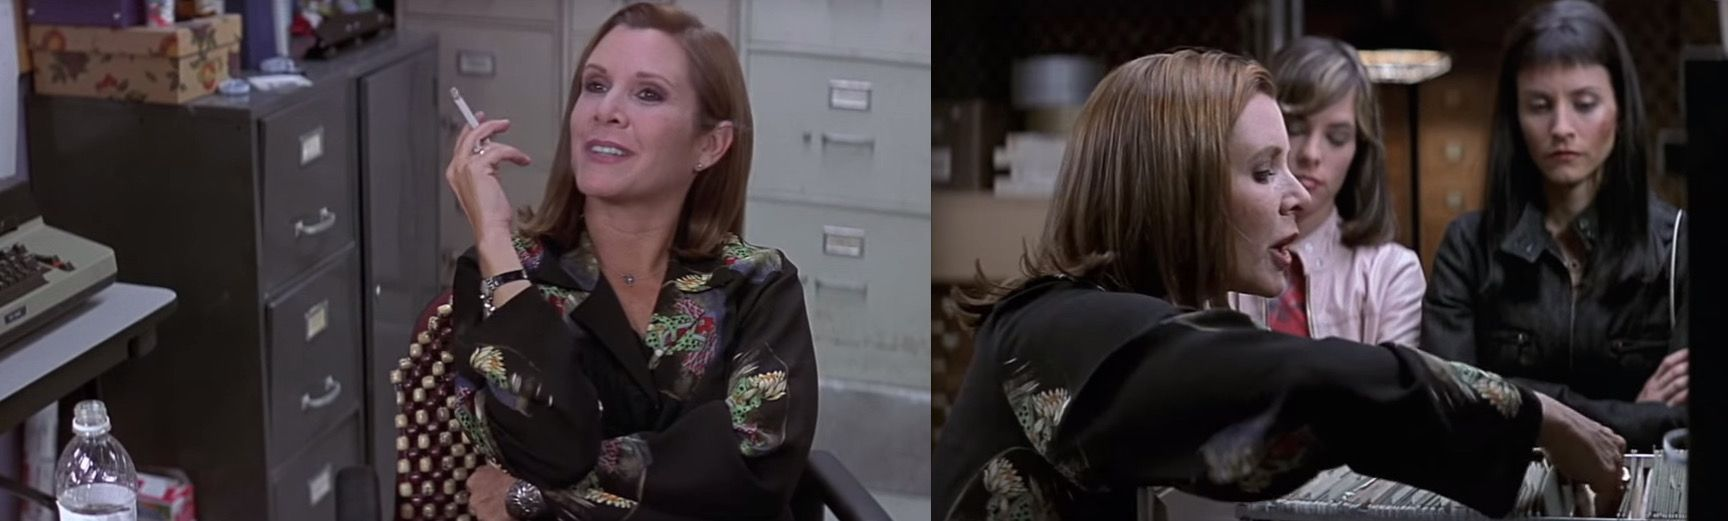 grande vente da30d 791fe Scream 3...Was funny when they asked if she Is Carrie Fisher ...